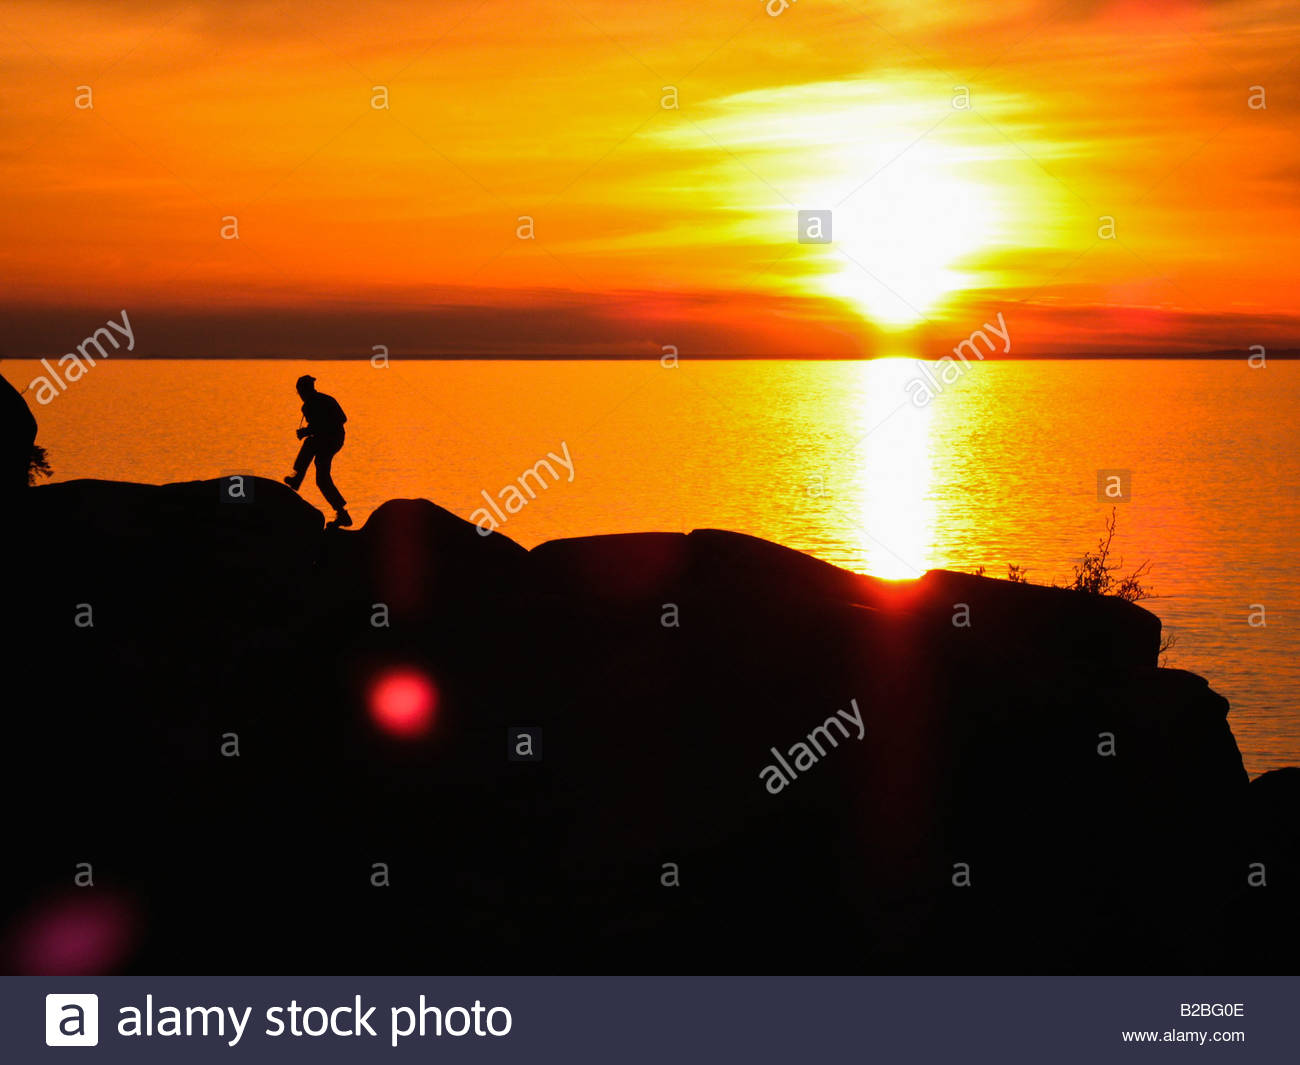 Person on cliff at sunset Stock Photo